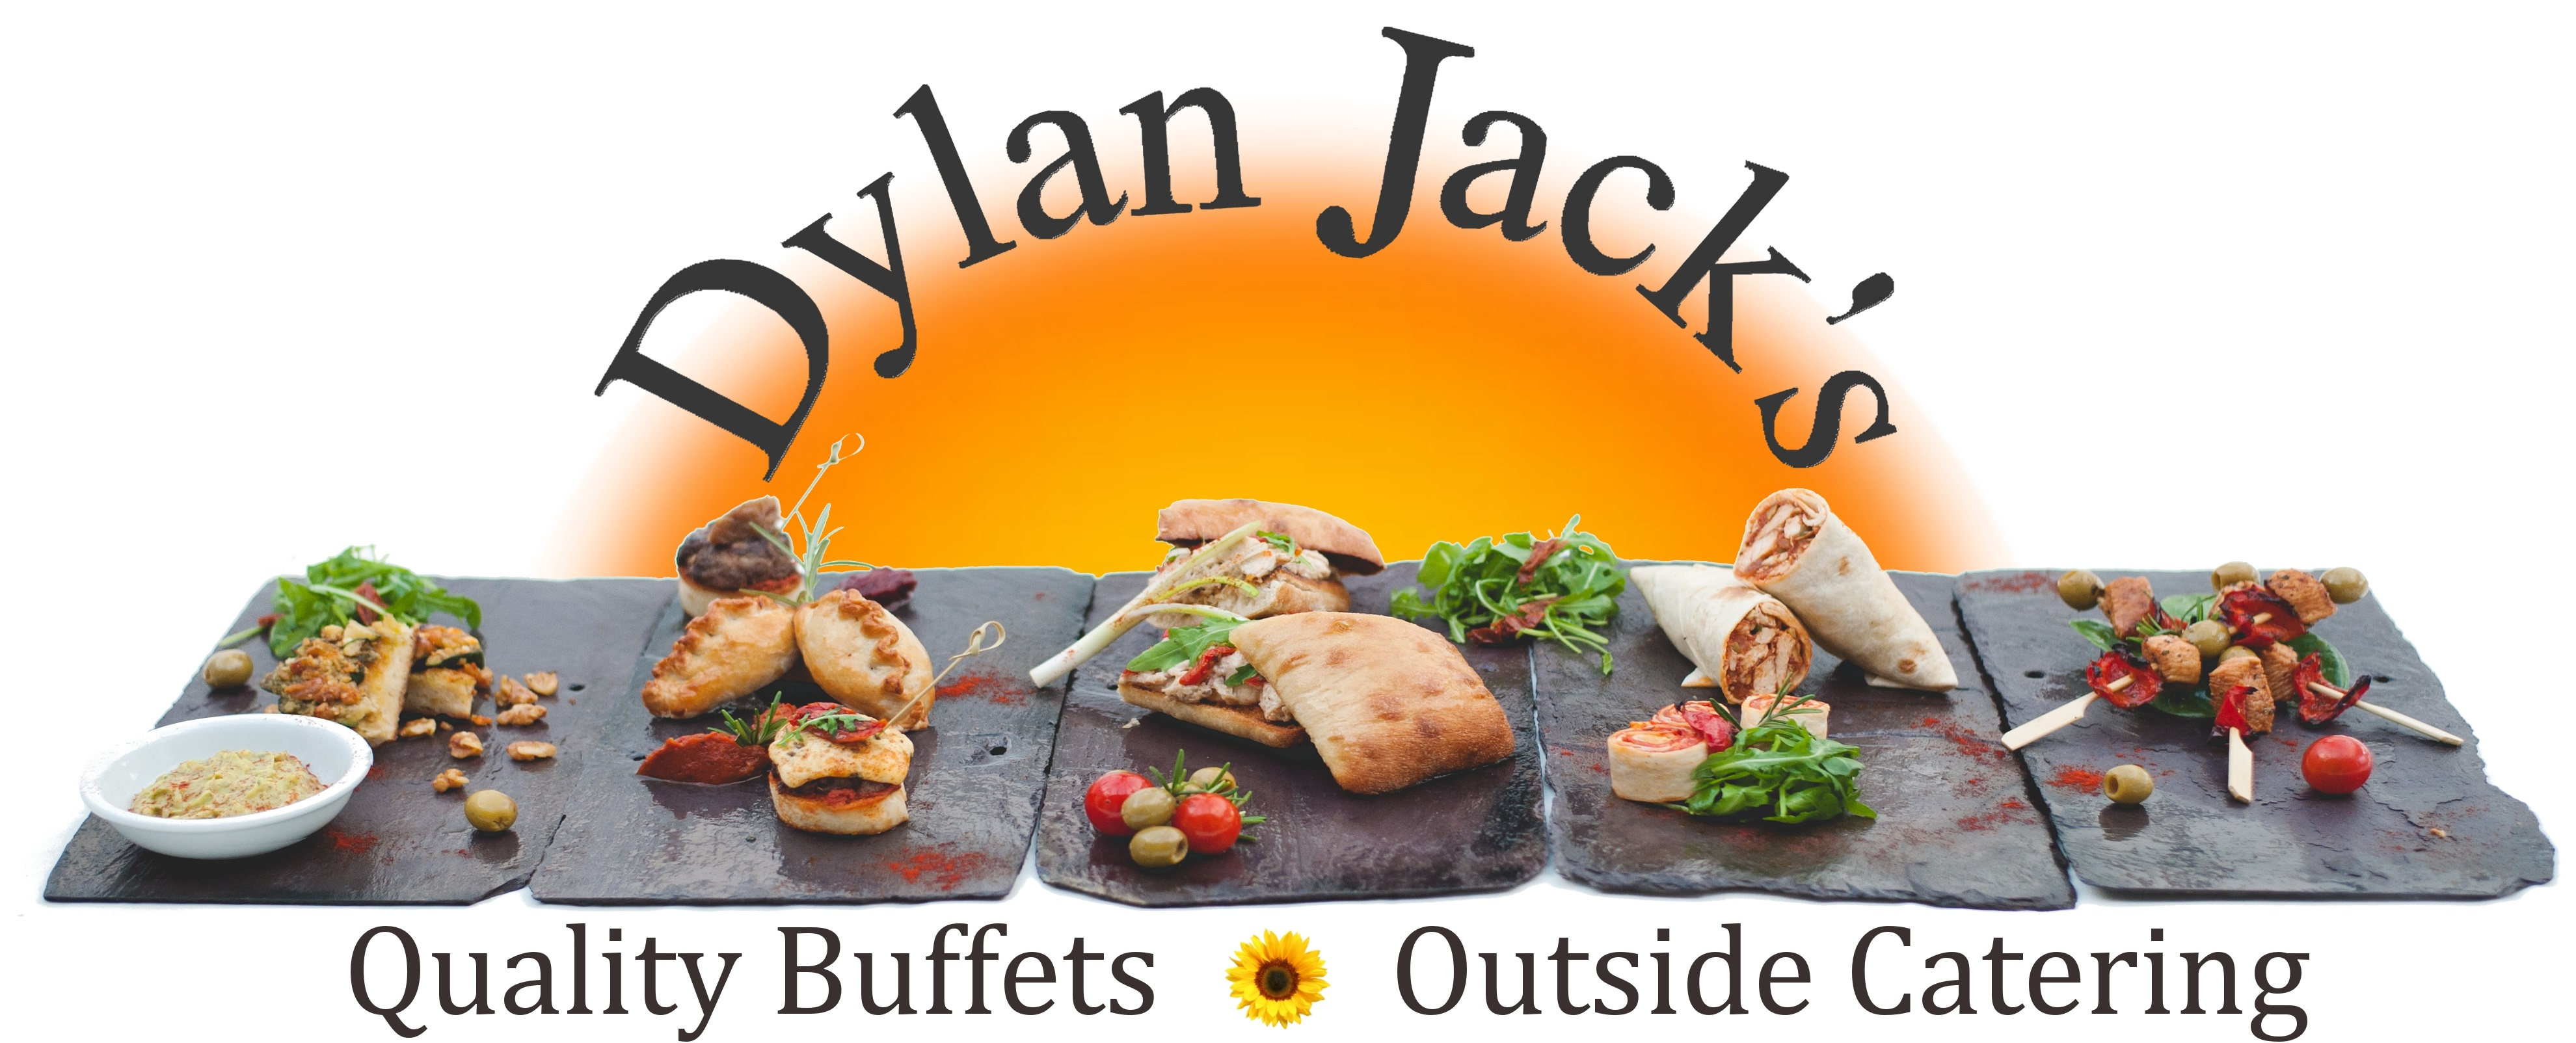 Dylan Jack's Catering